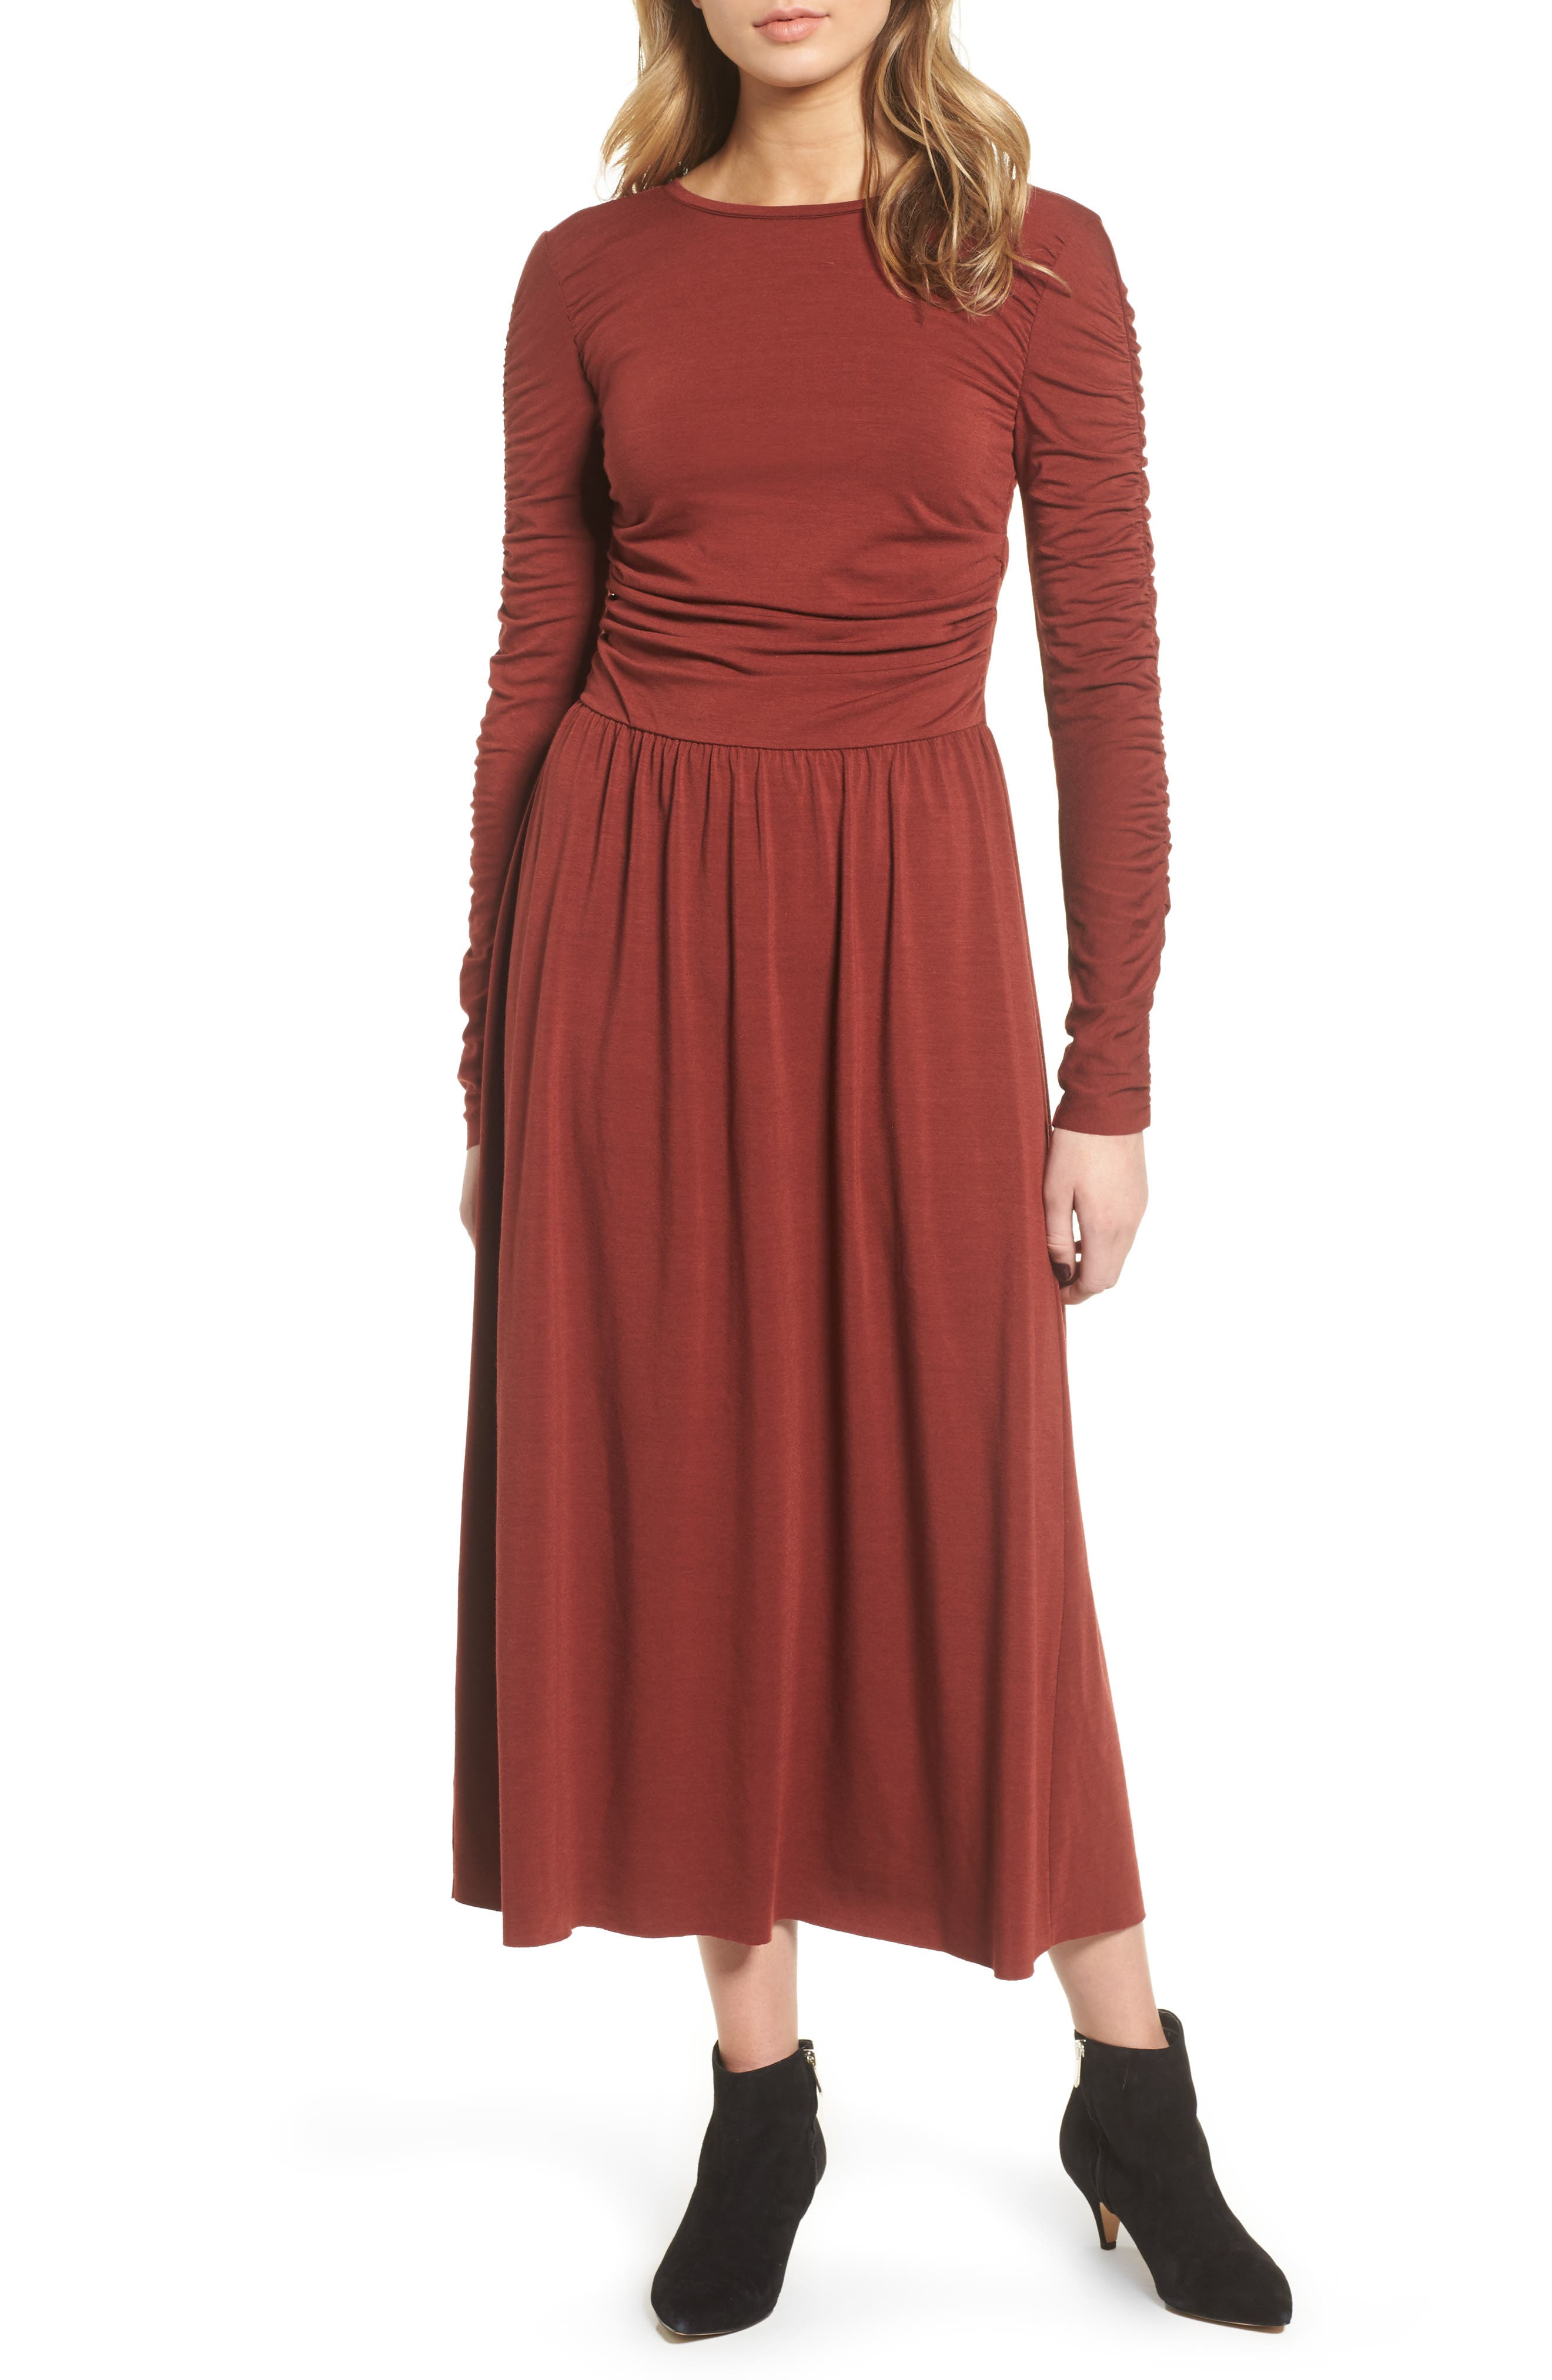 Ruched Jersey Knit Dress,                         Main,                         color, 200